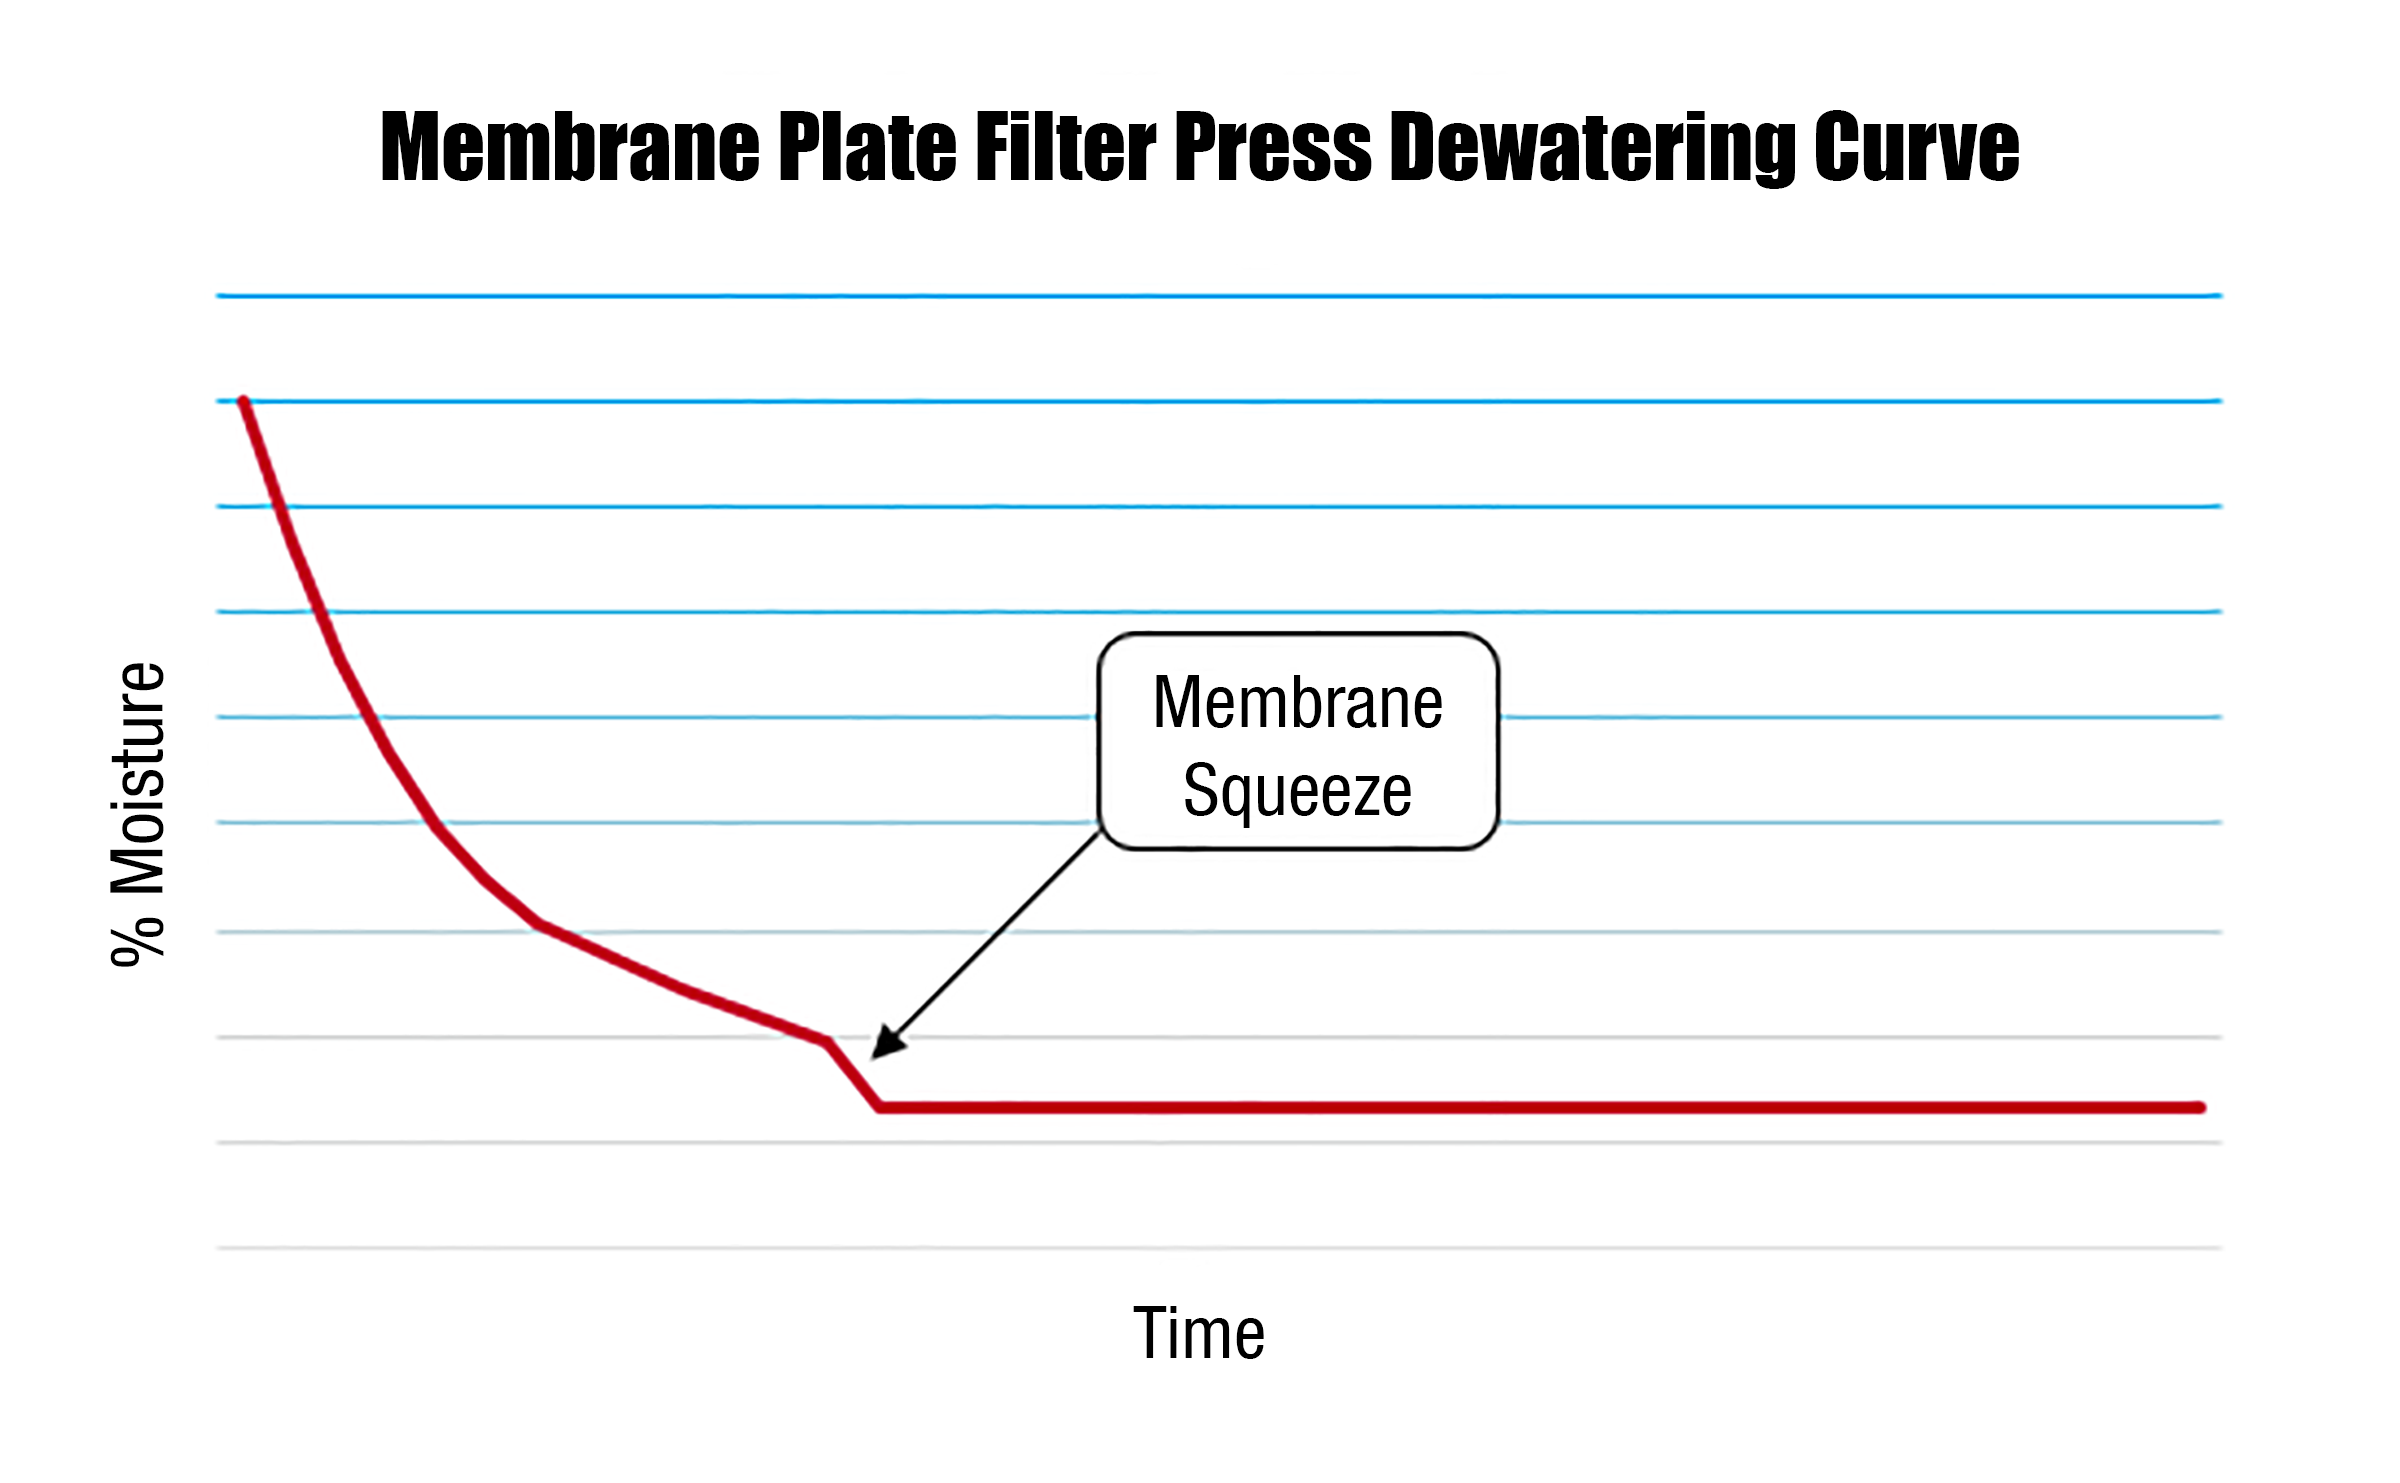 Filter-Press-Dewatering-Curve-Membrane-Squeeze.PNG?mtime=20191025143211#asset:44945